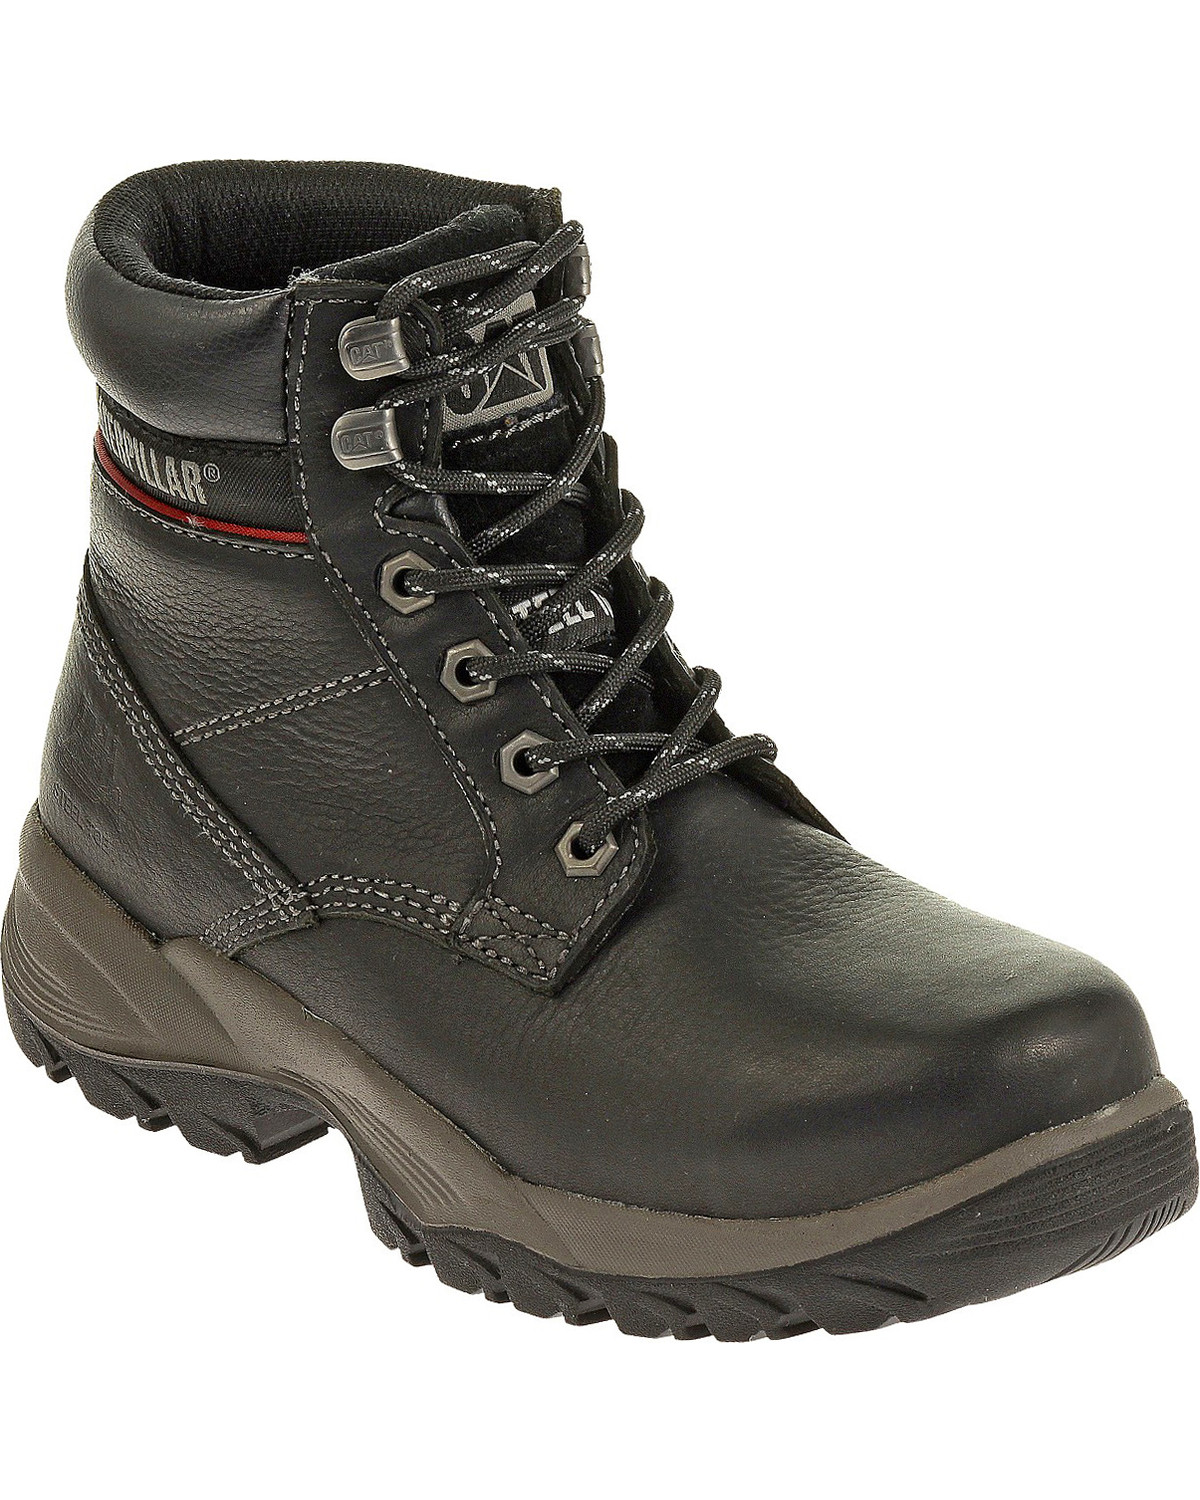 Caterpillar Womens Dryverse 6 Waterproof Work Boots Steel Toe